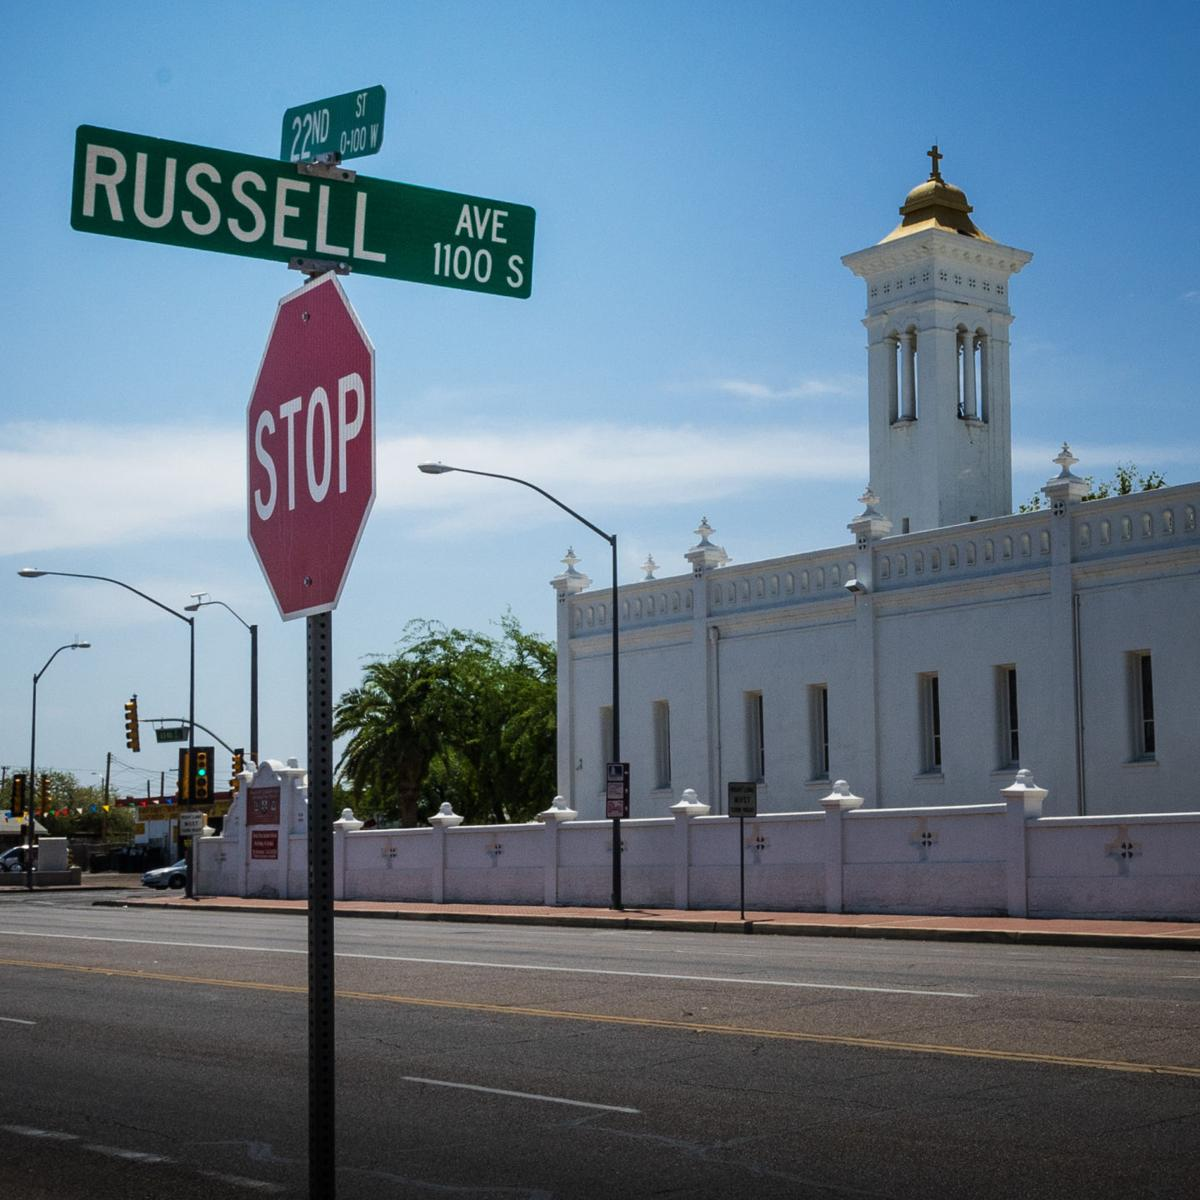 Street Smarts: Russell Ave.